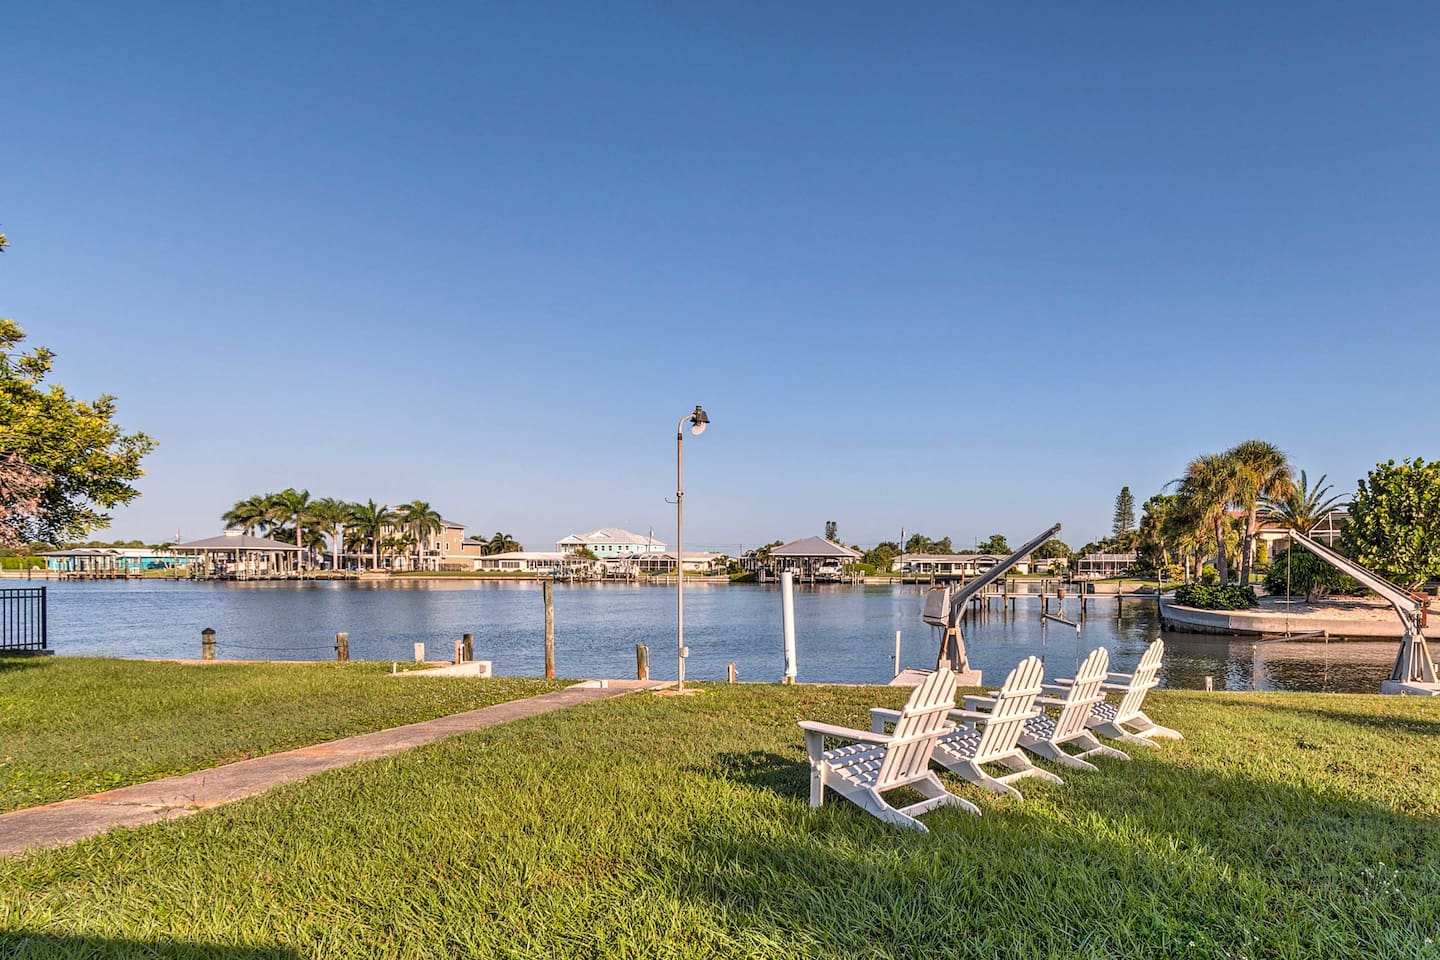 Book your Englewood trip to this waterfront 2-bedroom, 2-bath vacation rental!